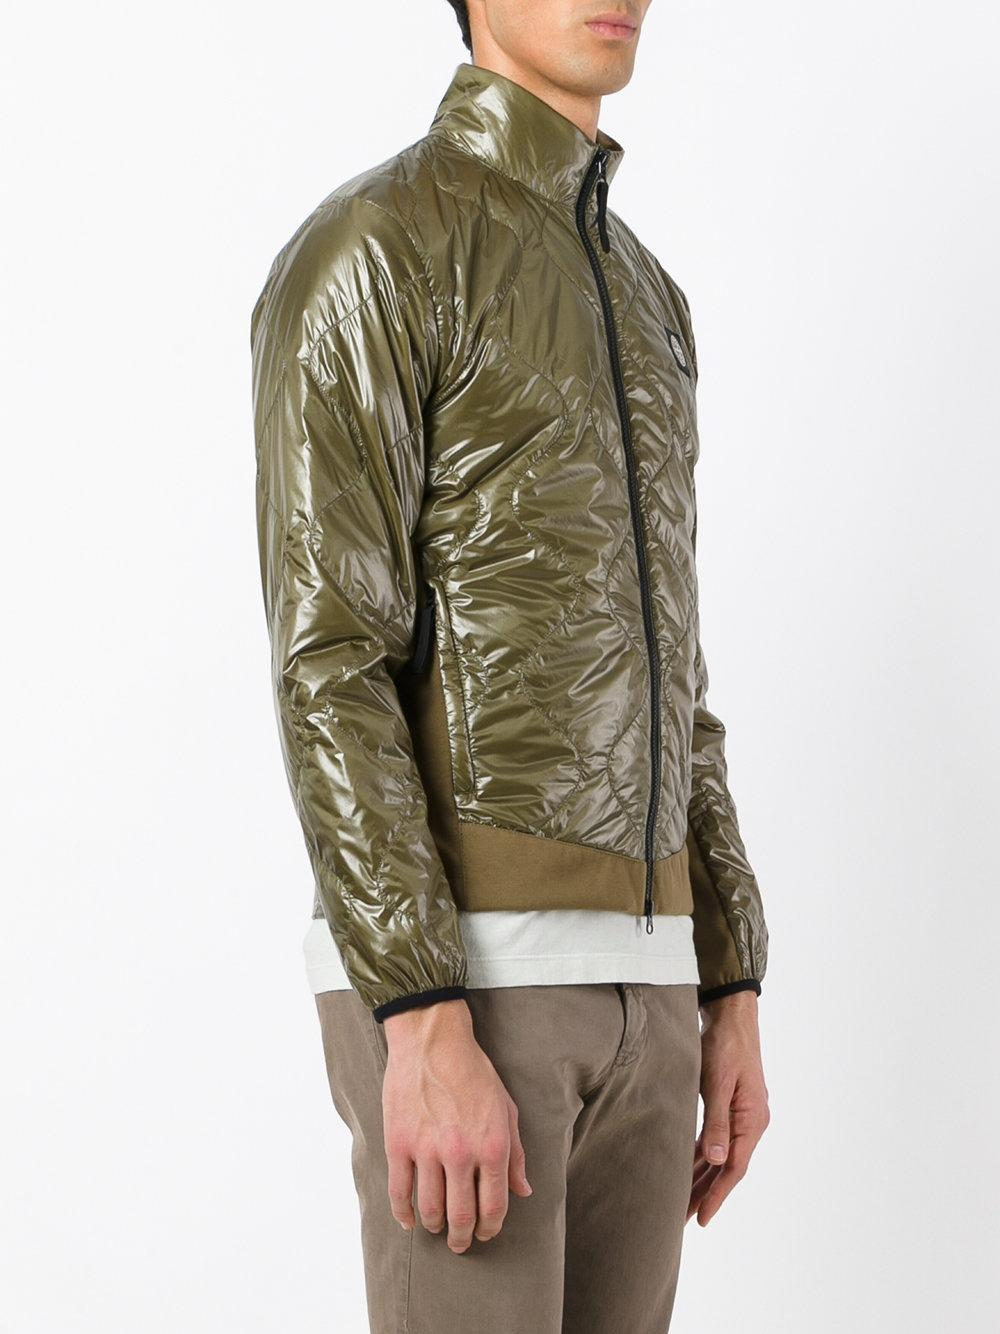 Stone Island Synthetic Metallic Quilted Jacket in Green for Men